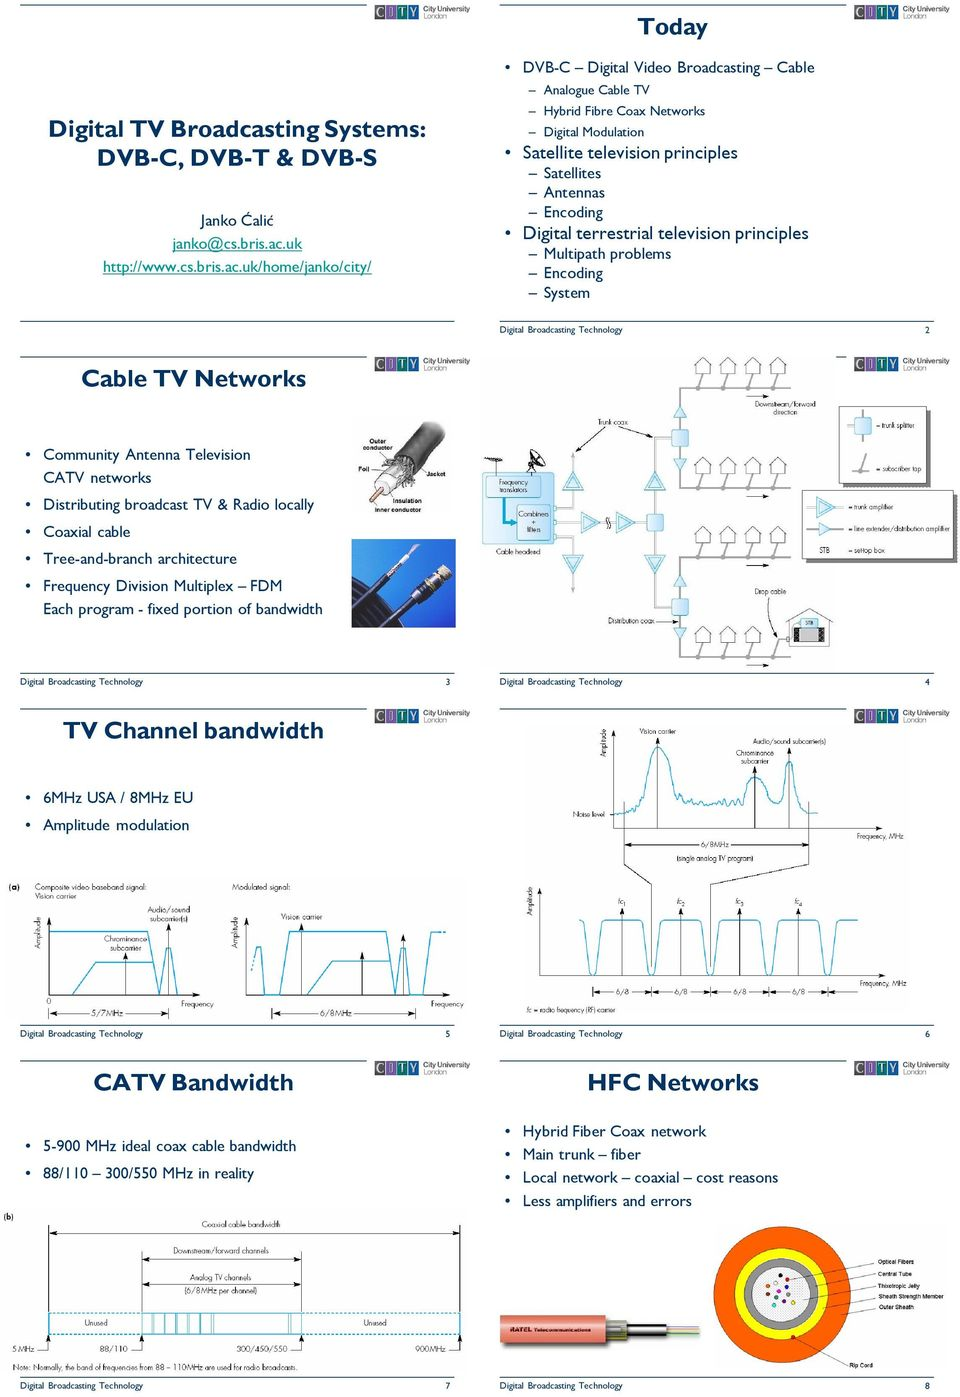 uk/home/janko/city/ DVB-C Digital Video Broadcasting Cable Analogue Cable TV Hybrid Fibre Coax Networks Digital Modulation Satellite television principles Satellites Antennas Encoding Digital